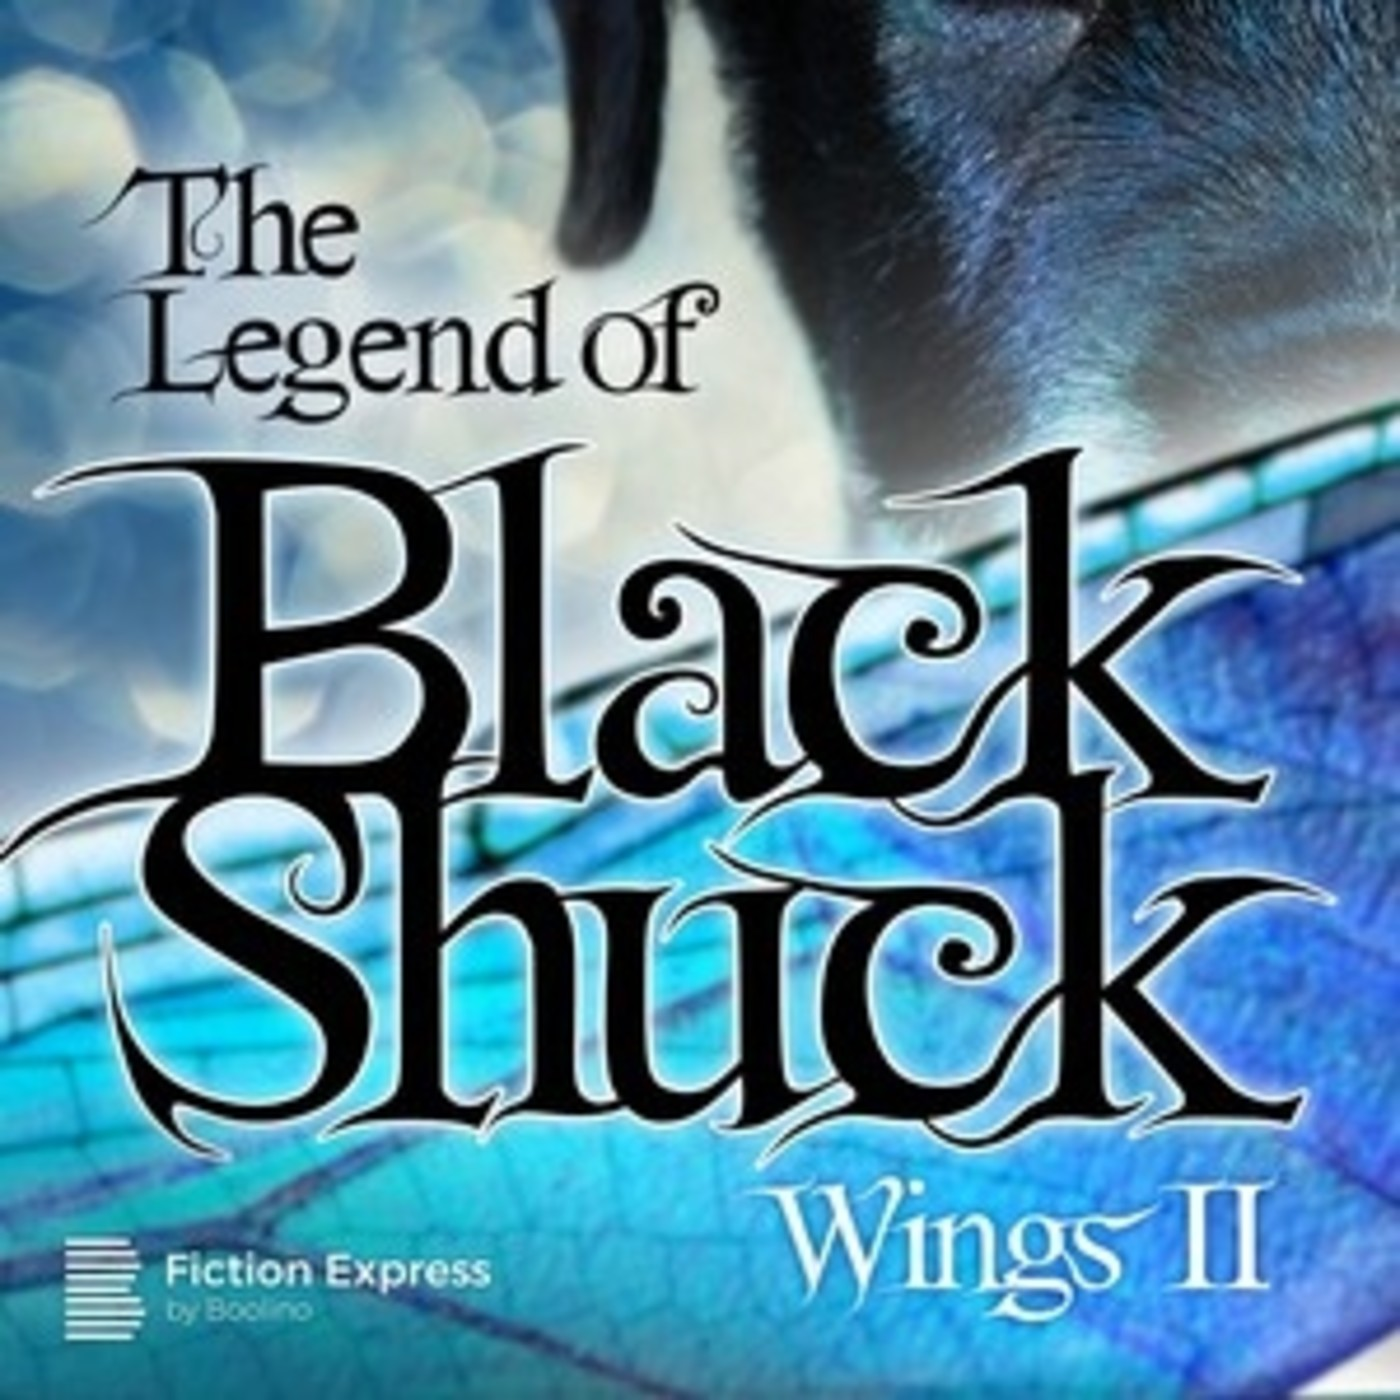 The legend of Black Shuck. Chapter 2. The Force